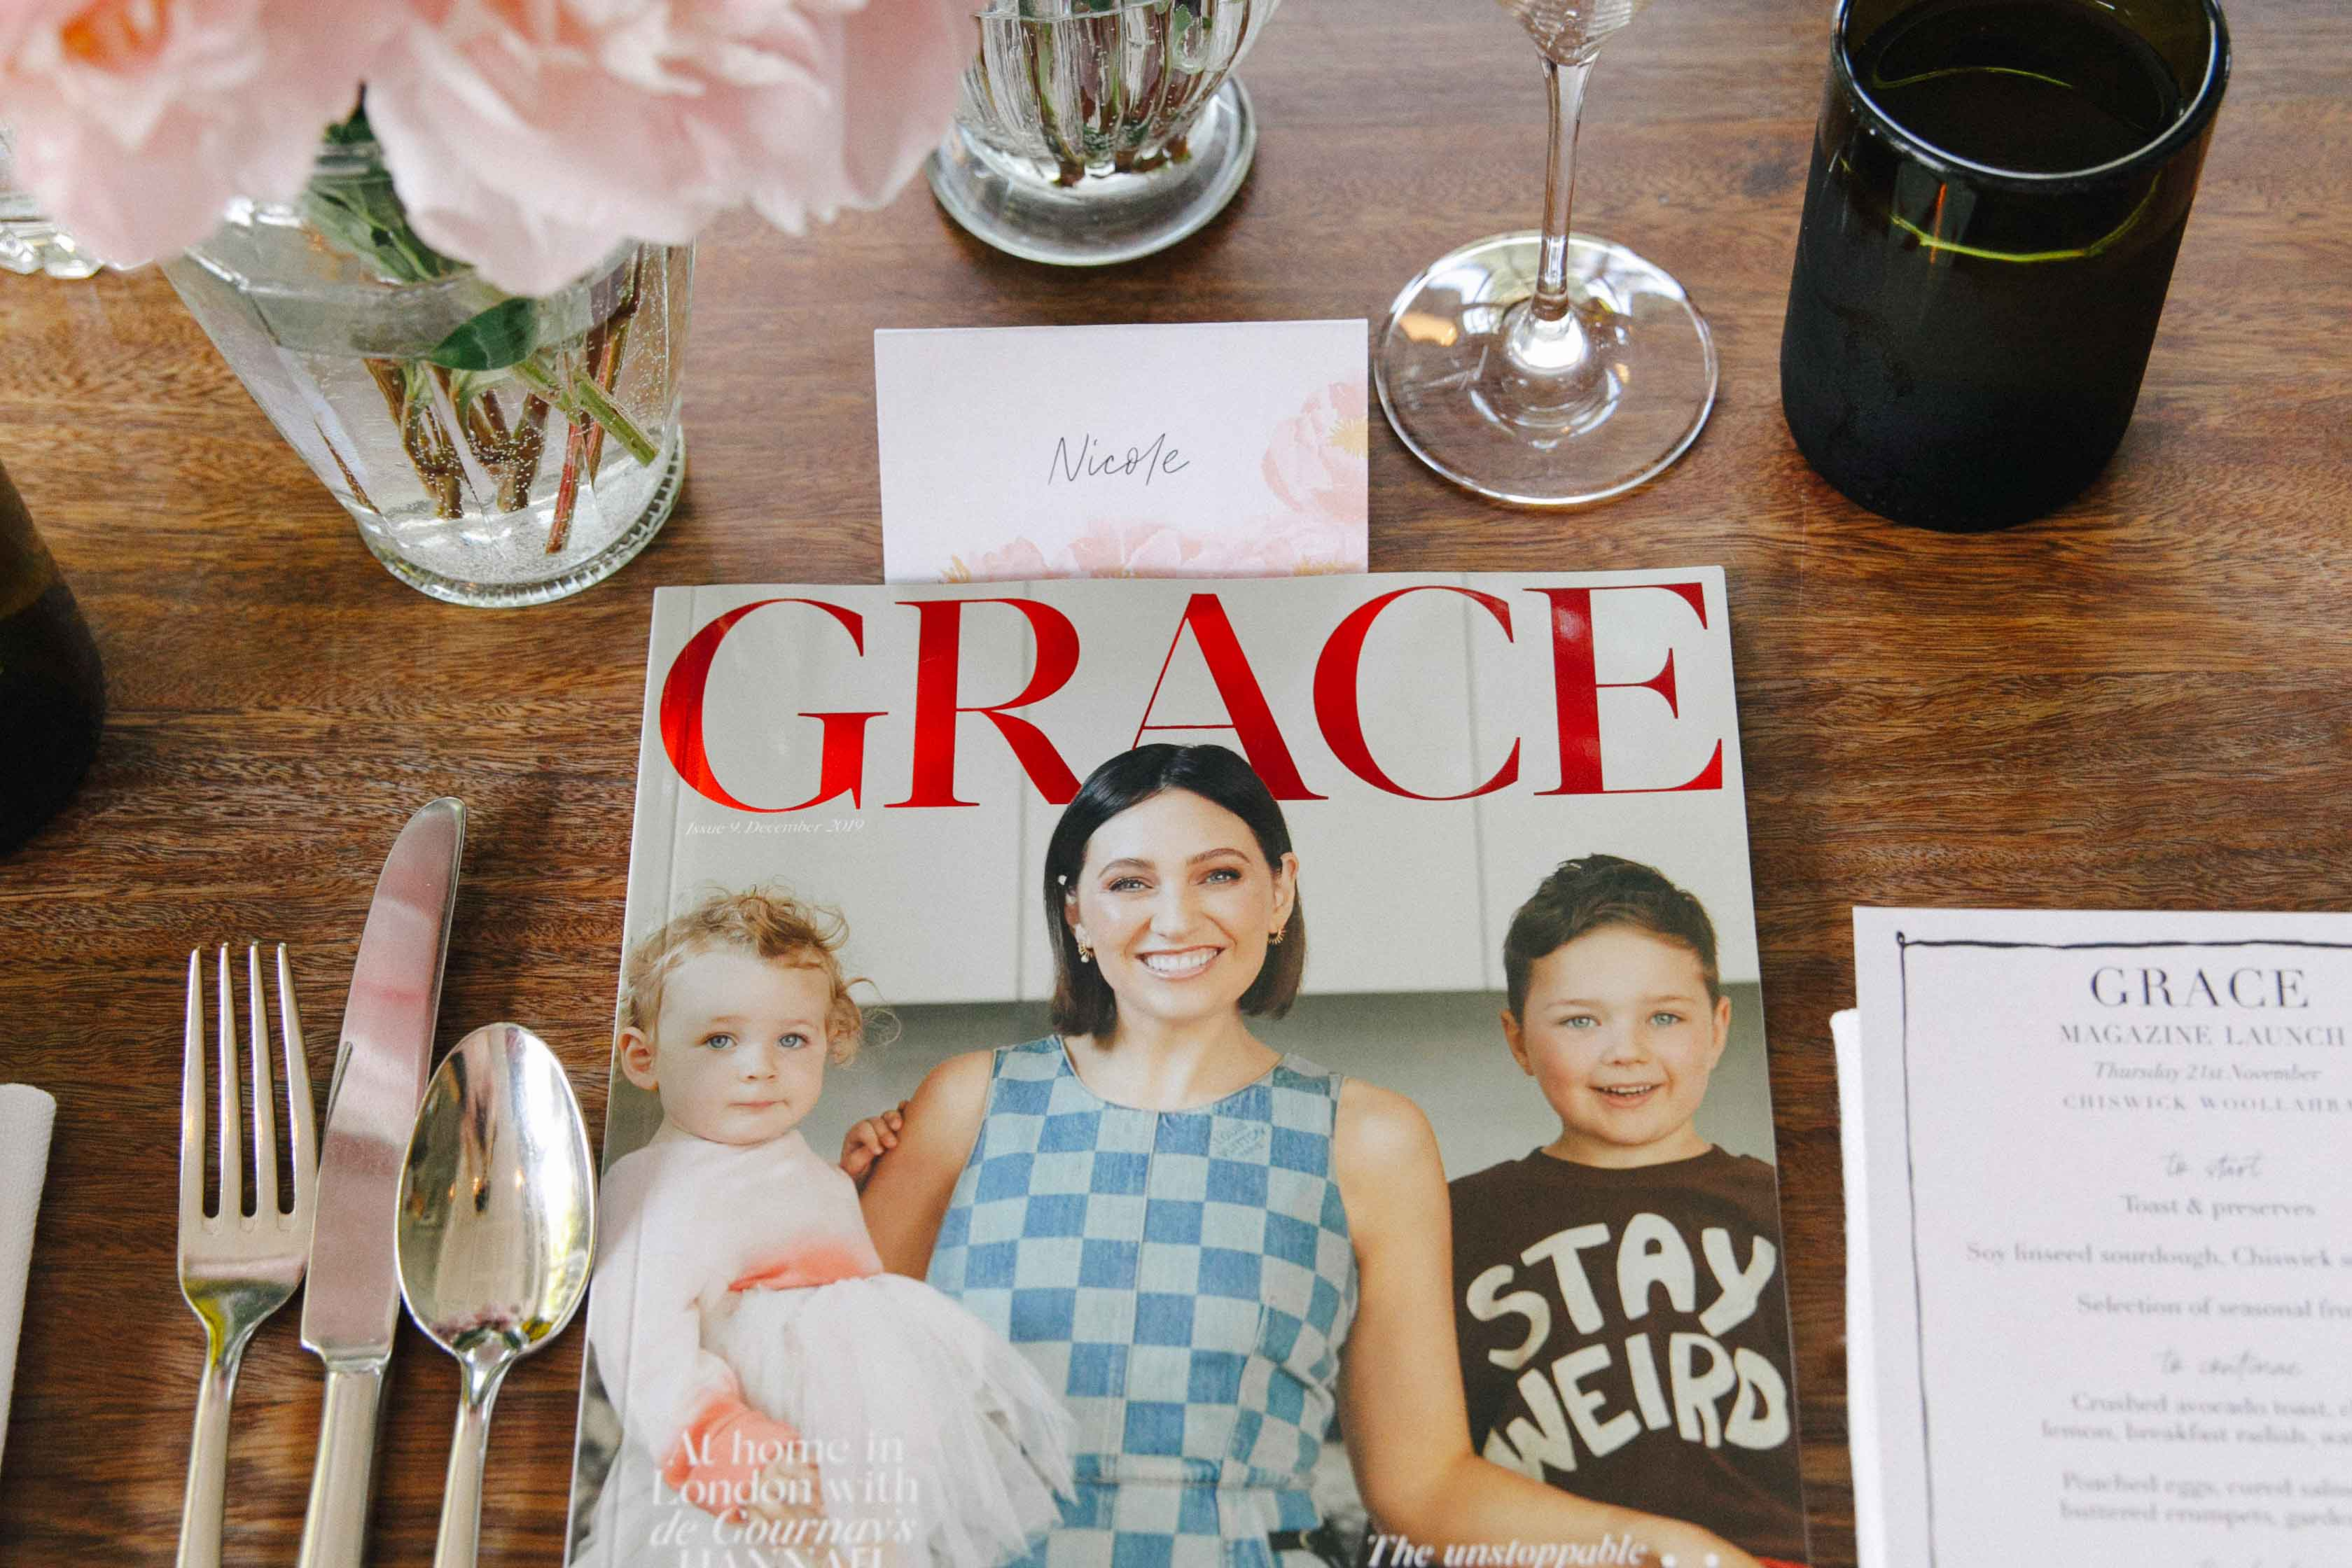 GRACE Magazine Launches As A Print Edition – And Here's How We Celebrated